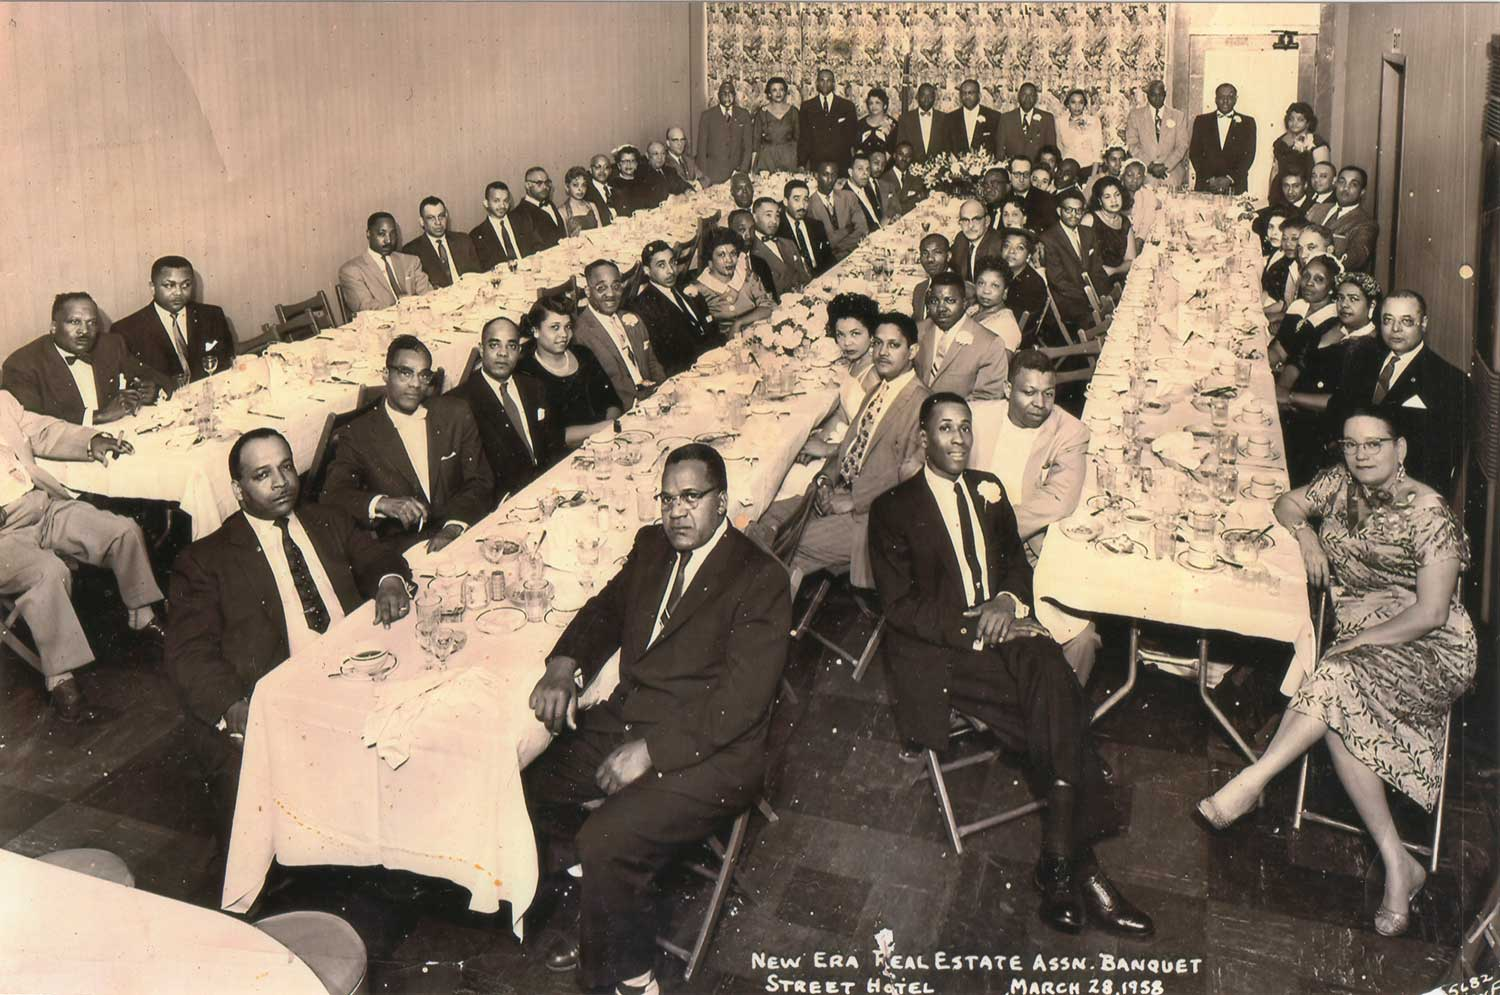 New Era Real Estate Association Banquet in 1958